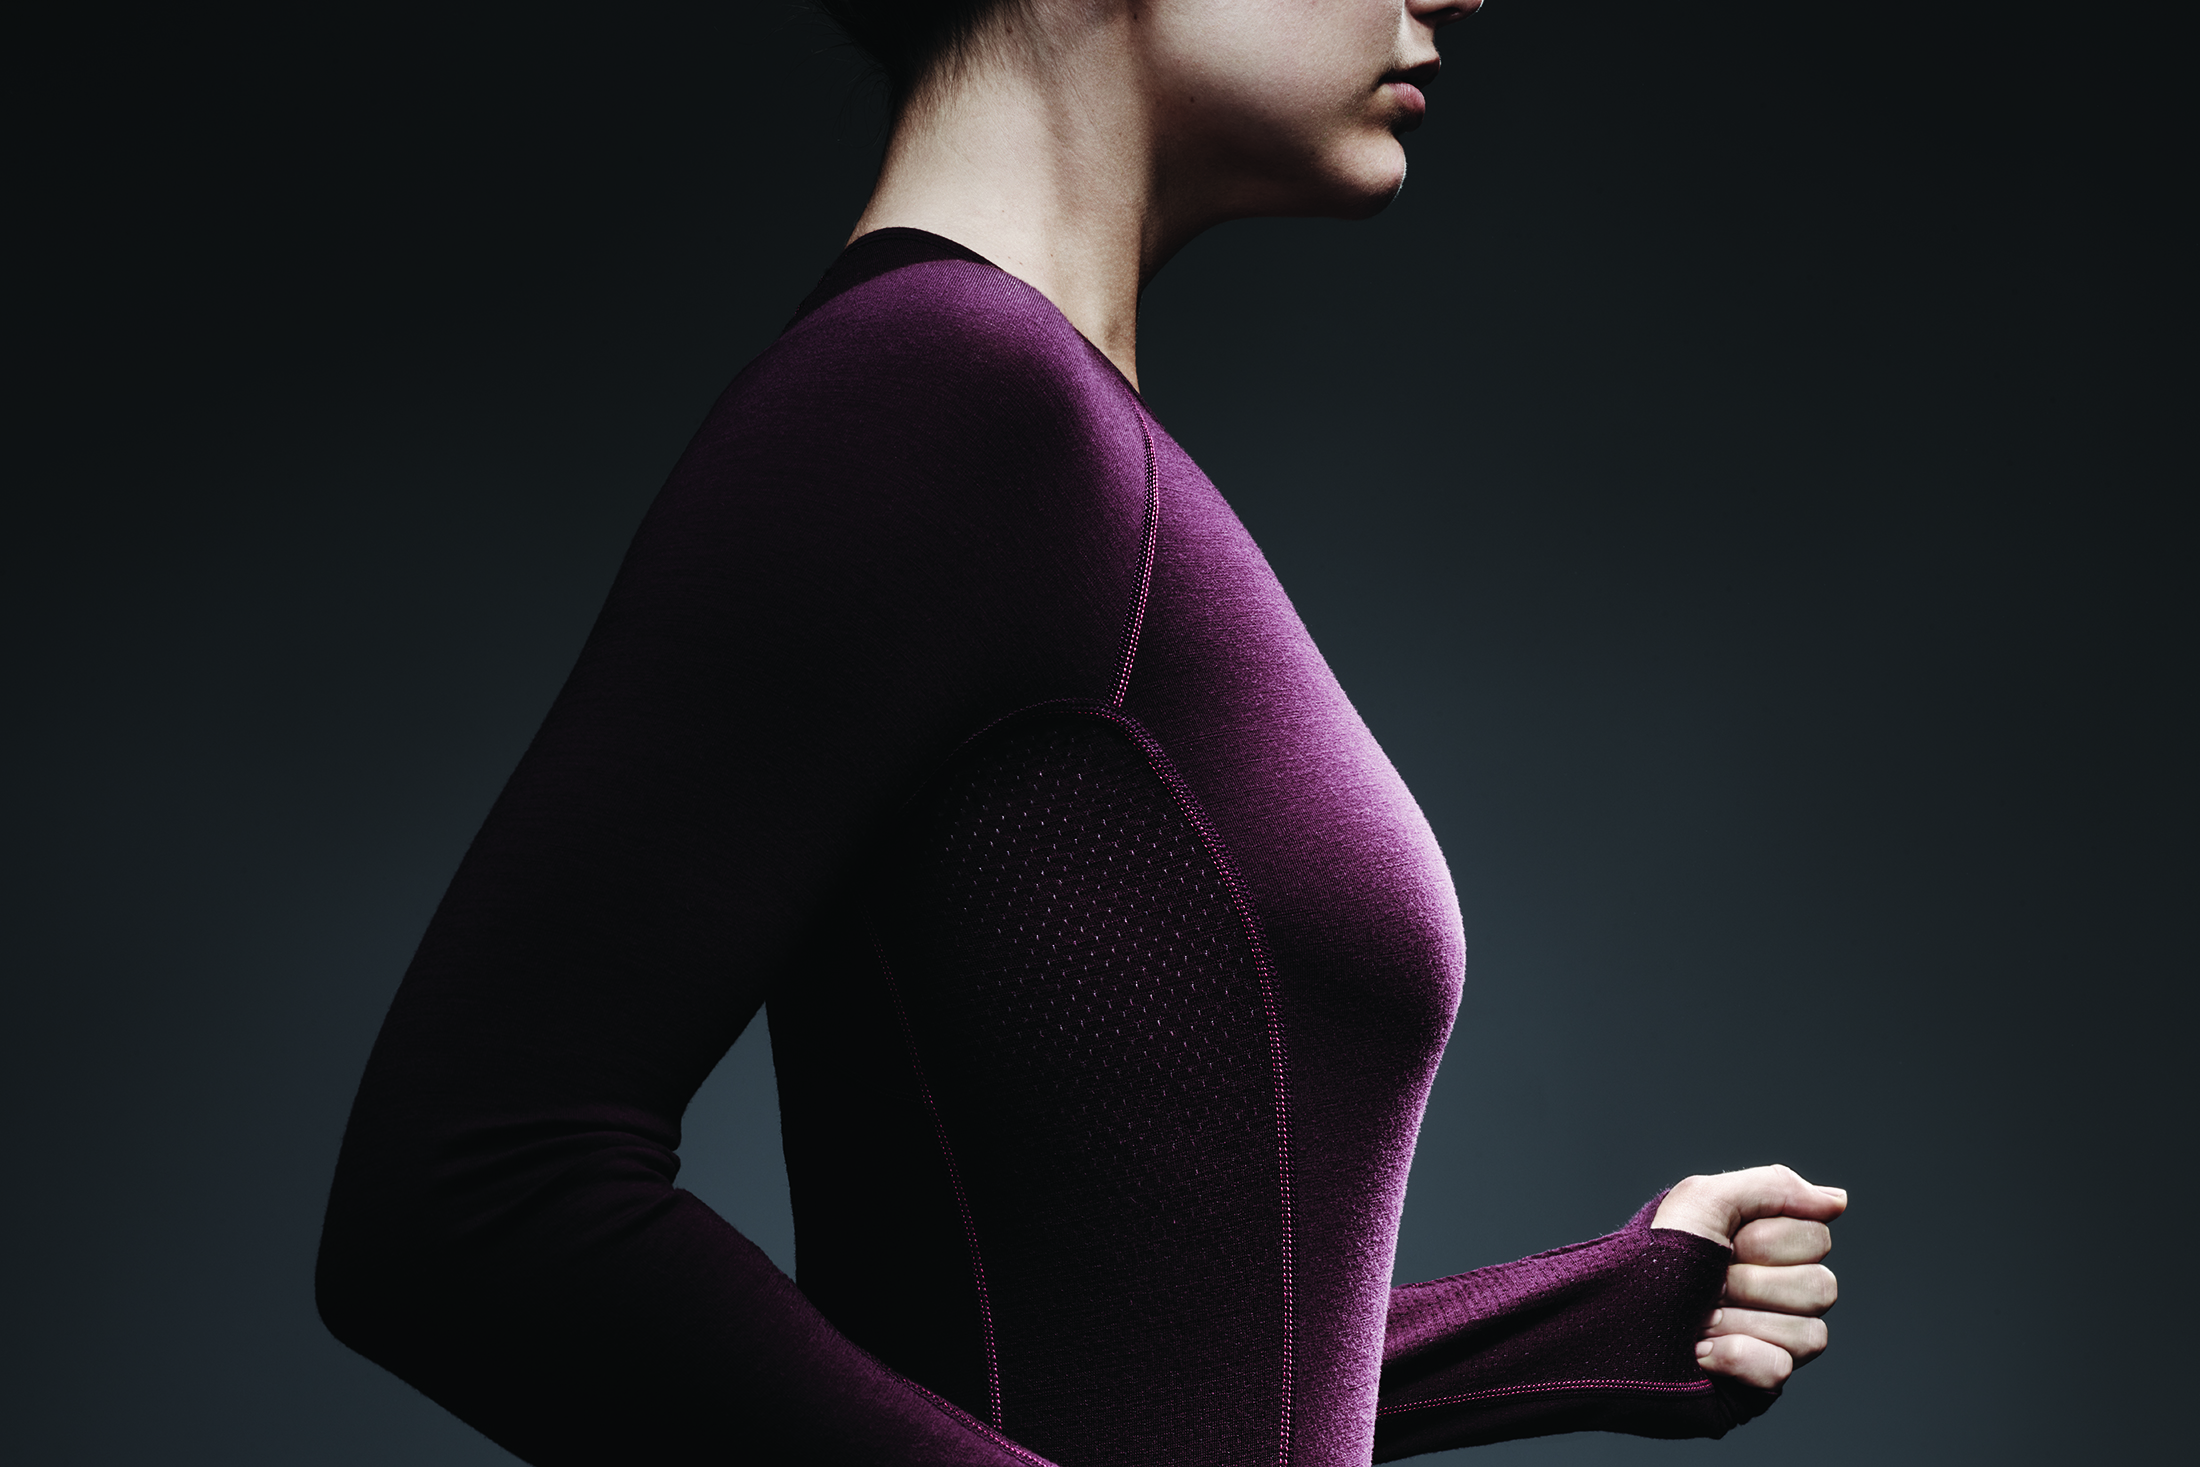 Icebreaker women's base layer